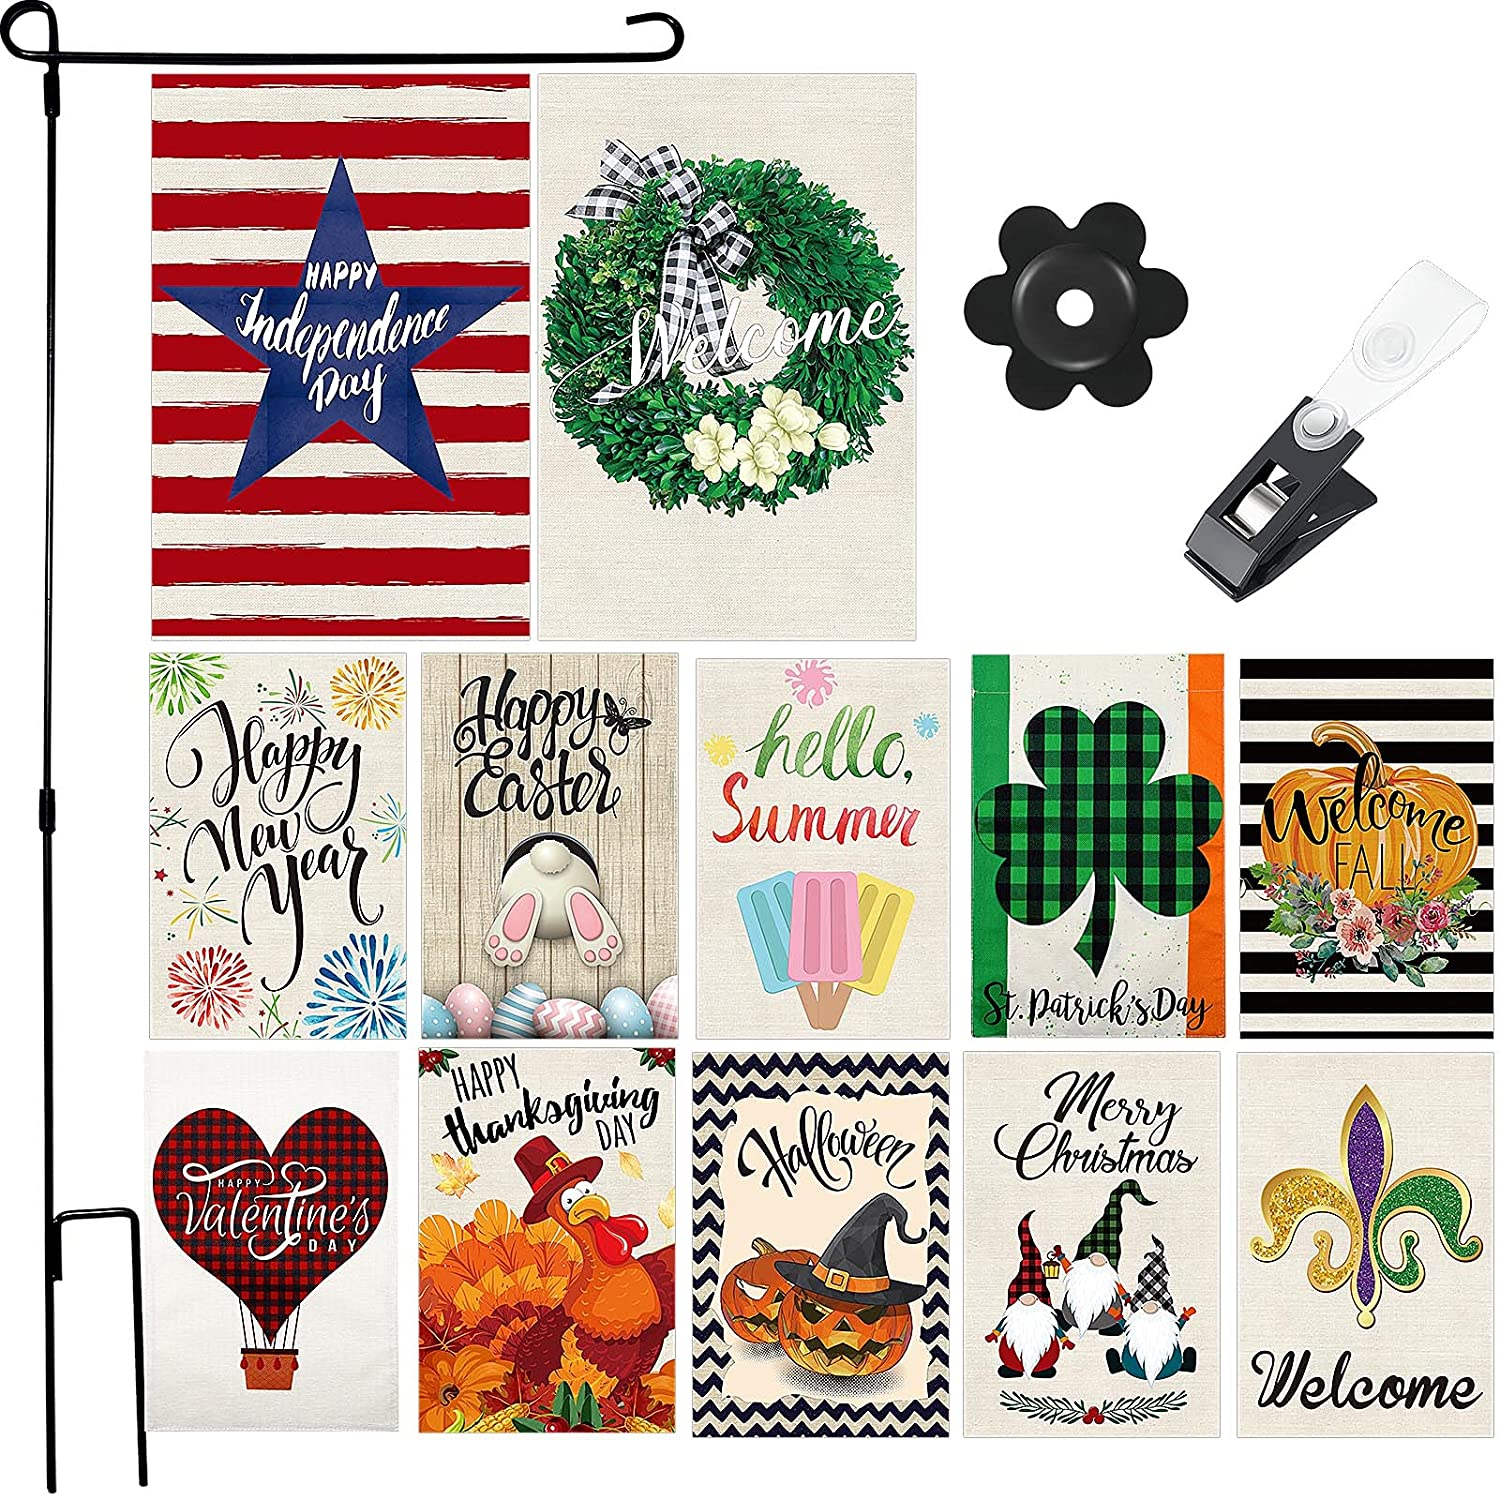 12 Pieces Seasonal Garden Flags Double Sided Holiday House Flag Vertical Decorative Outdoor Flags Welcome Party Yard Flags with Flag Stopper, Flagpole and Clips for Holiday Decoration, 12 x 18 Inch